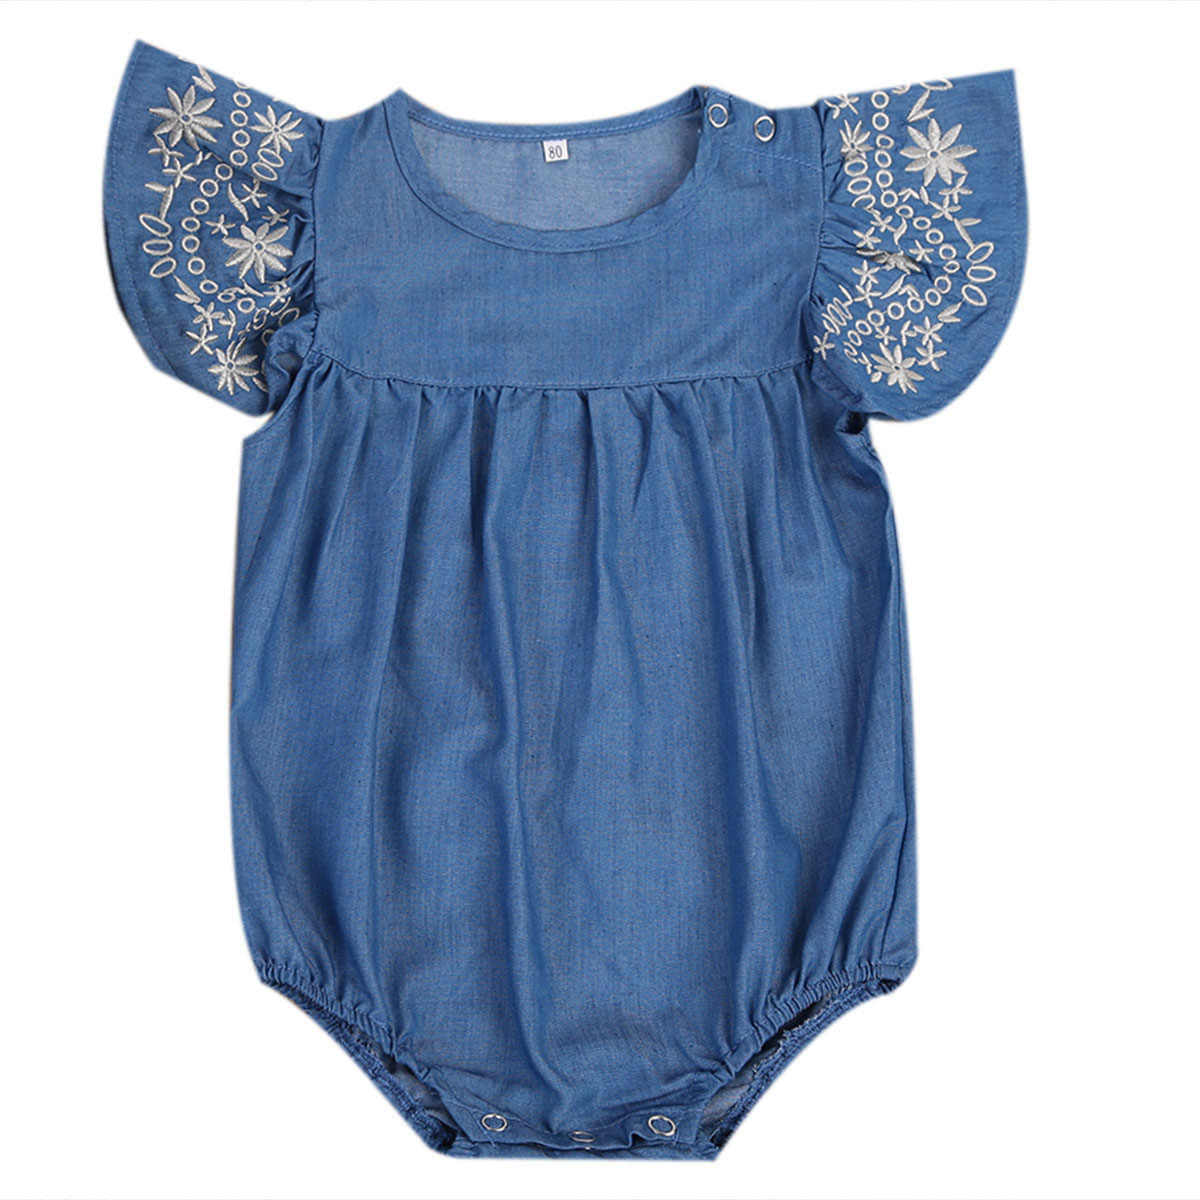 c2ff1ed682ed Detail Feedback Questions about Baby Girl Romper Denim Romper ...